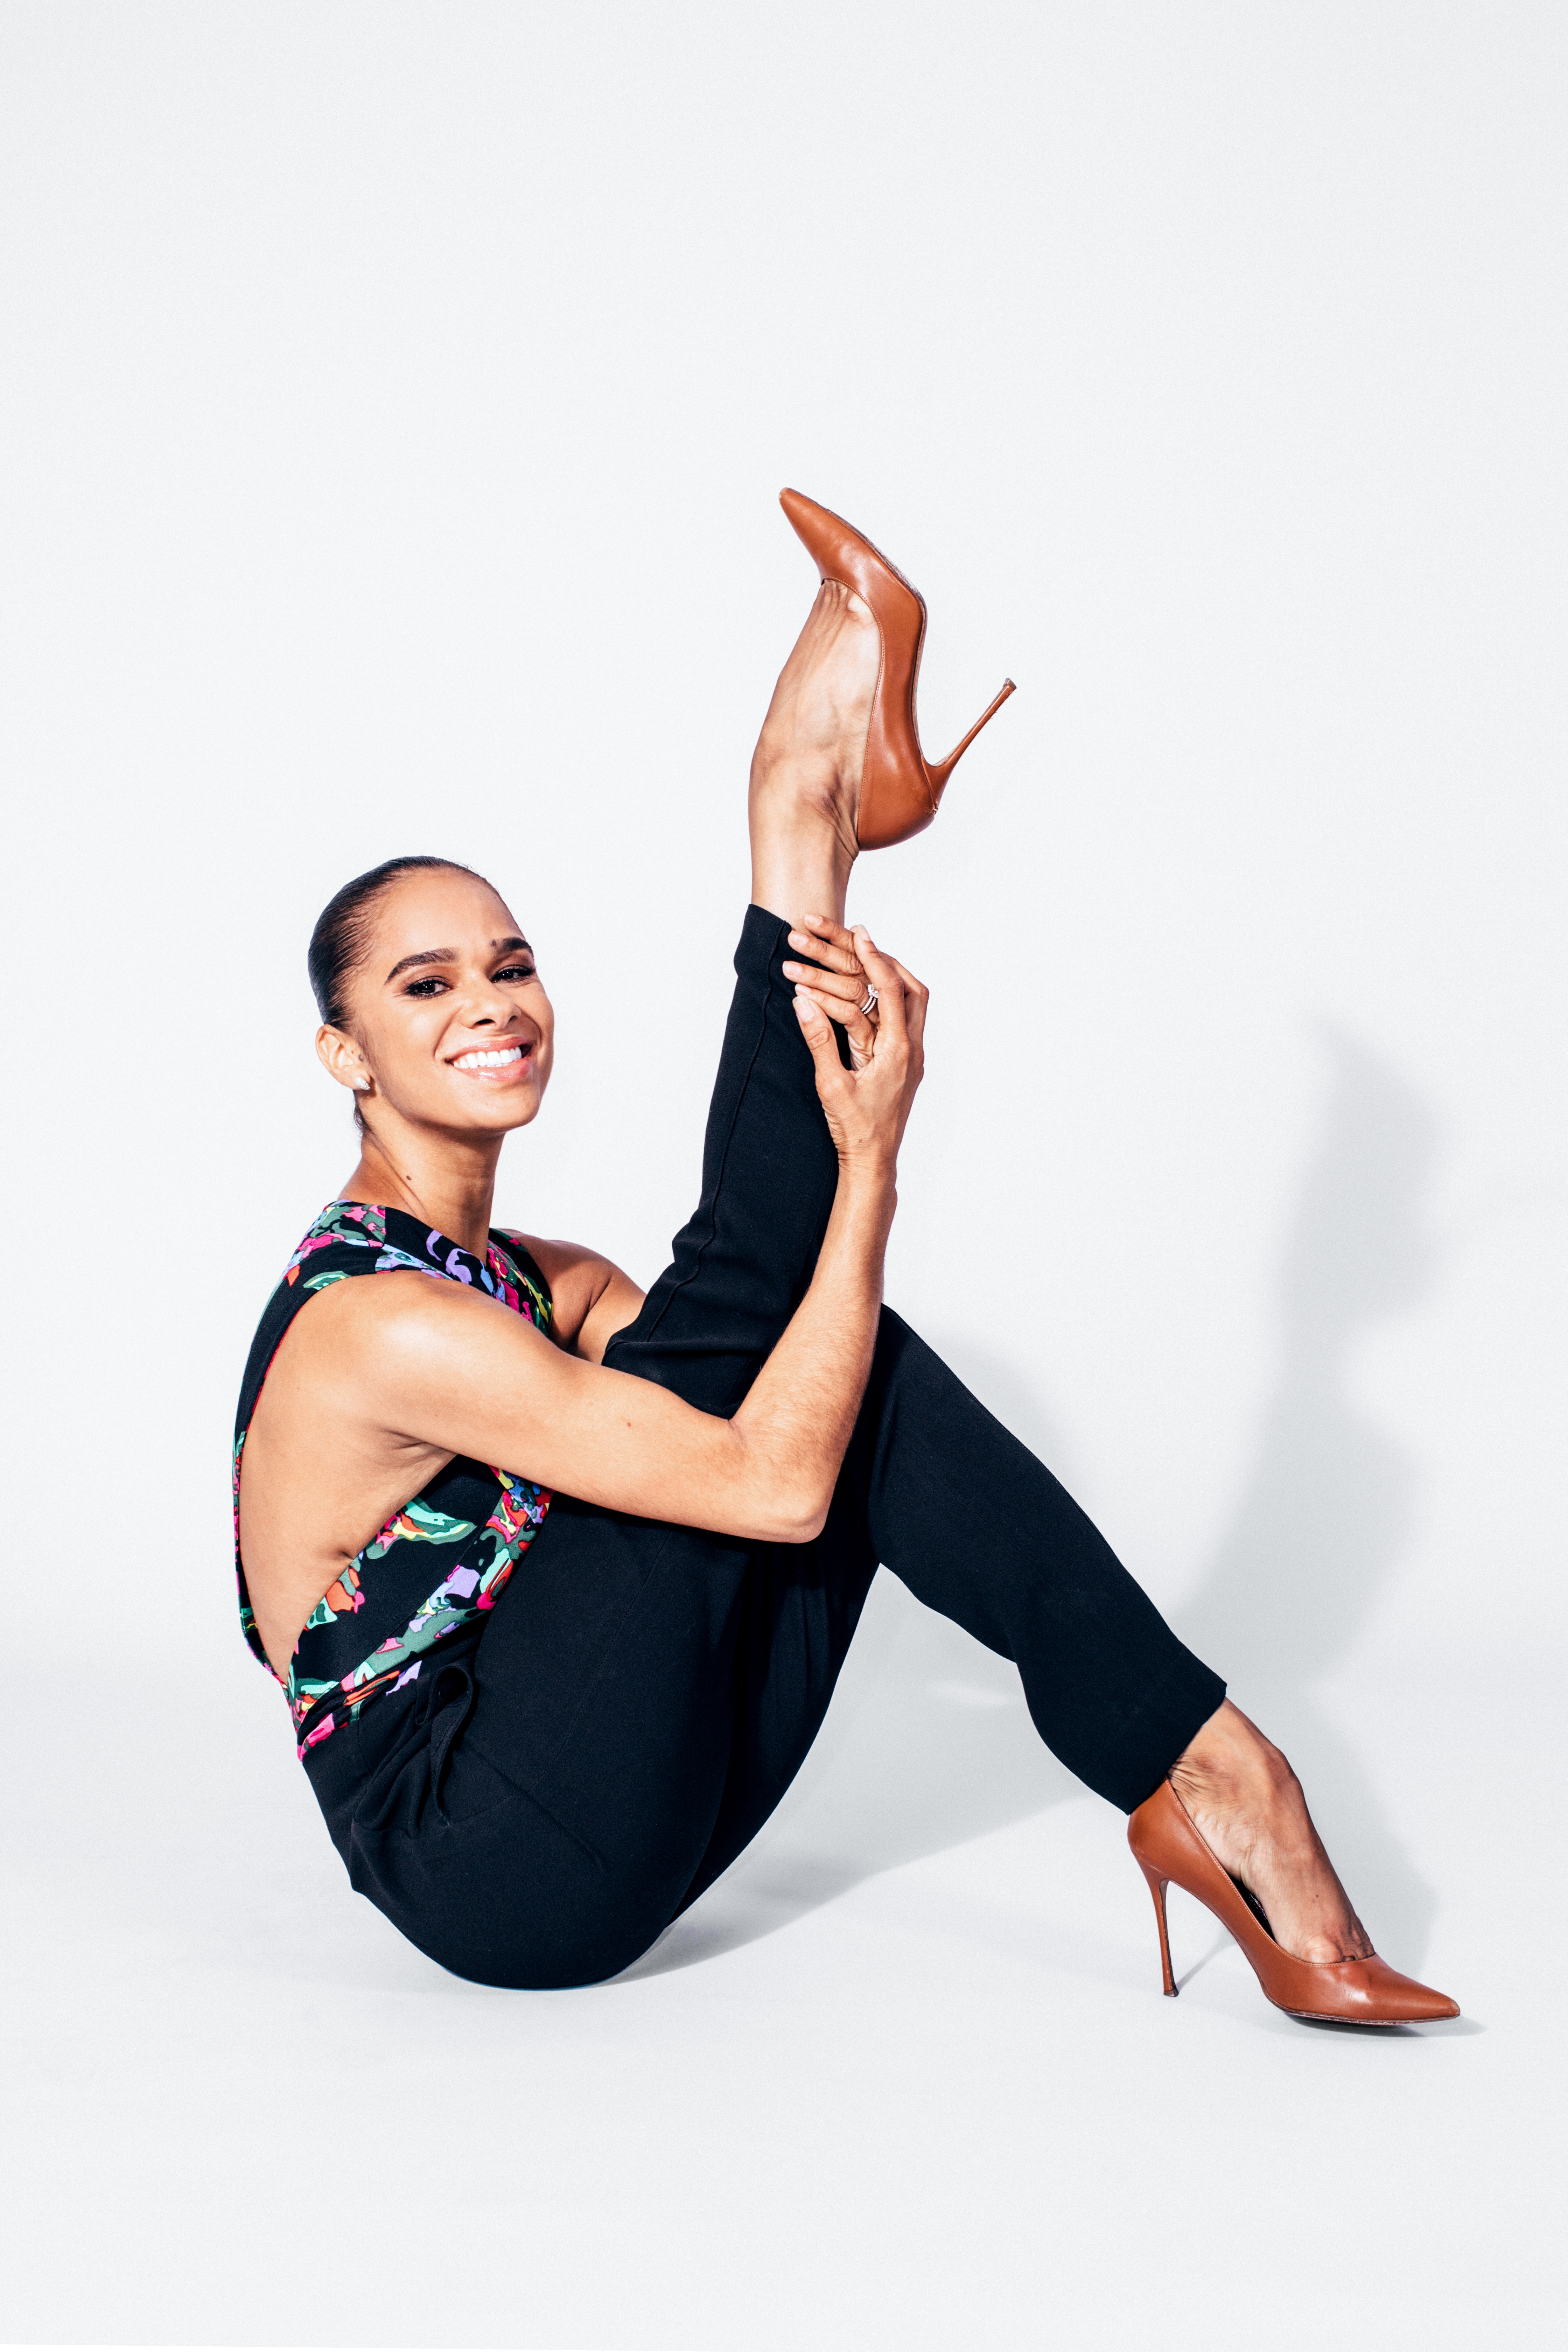 Hot Misty Copeland  nudes (27 images), Snapchat, butt